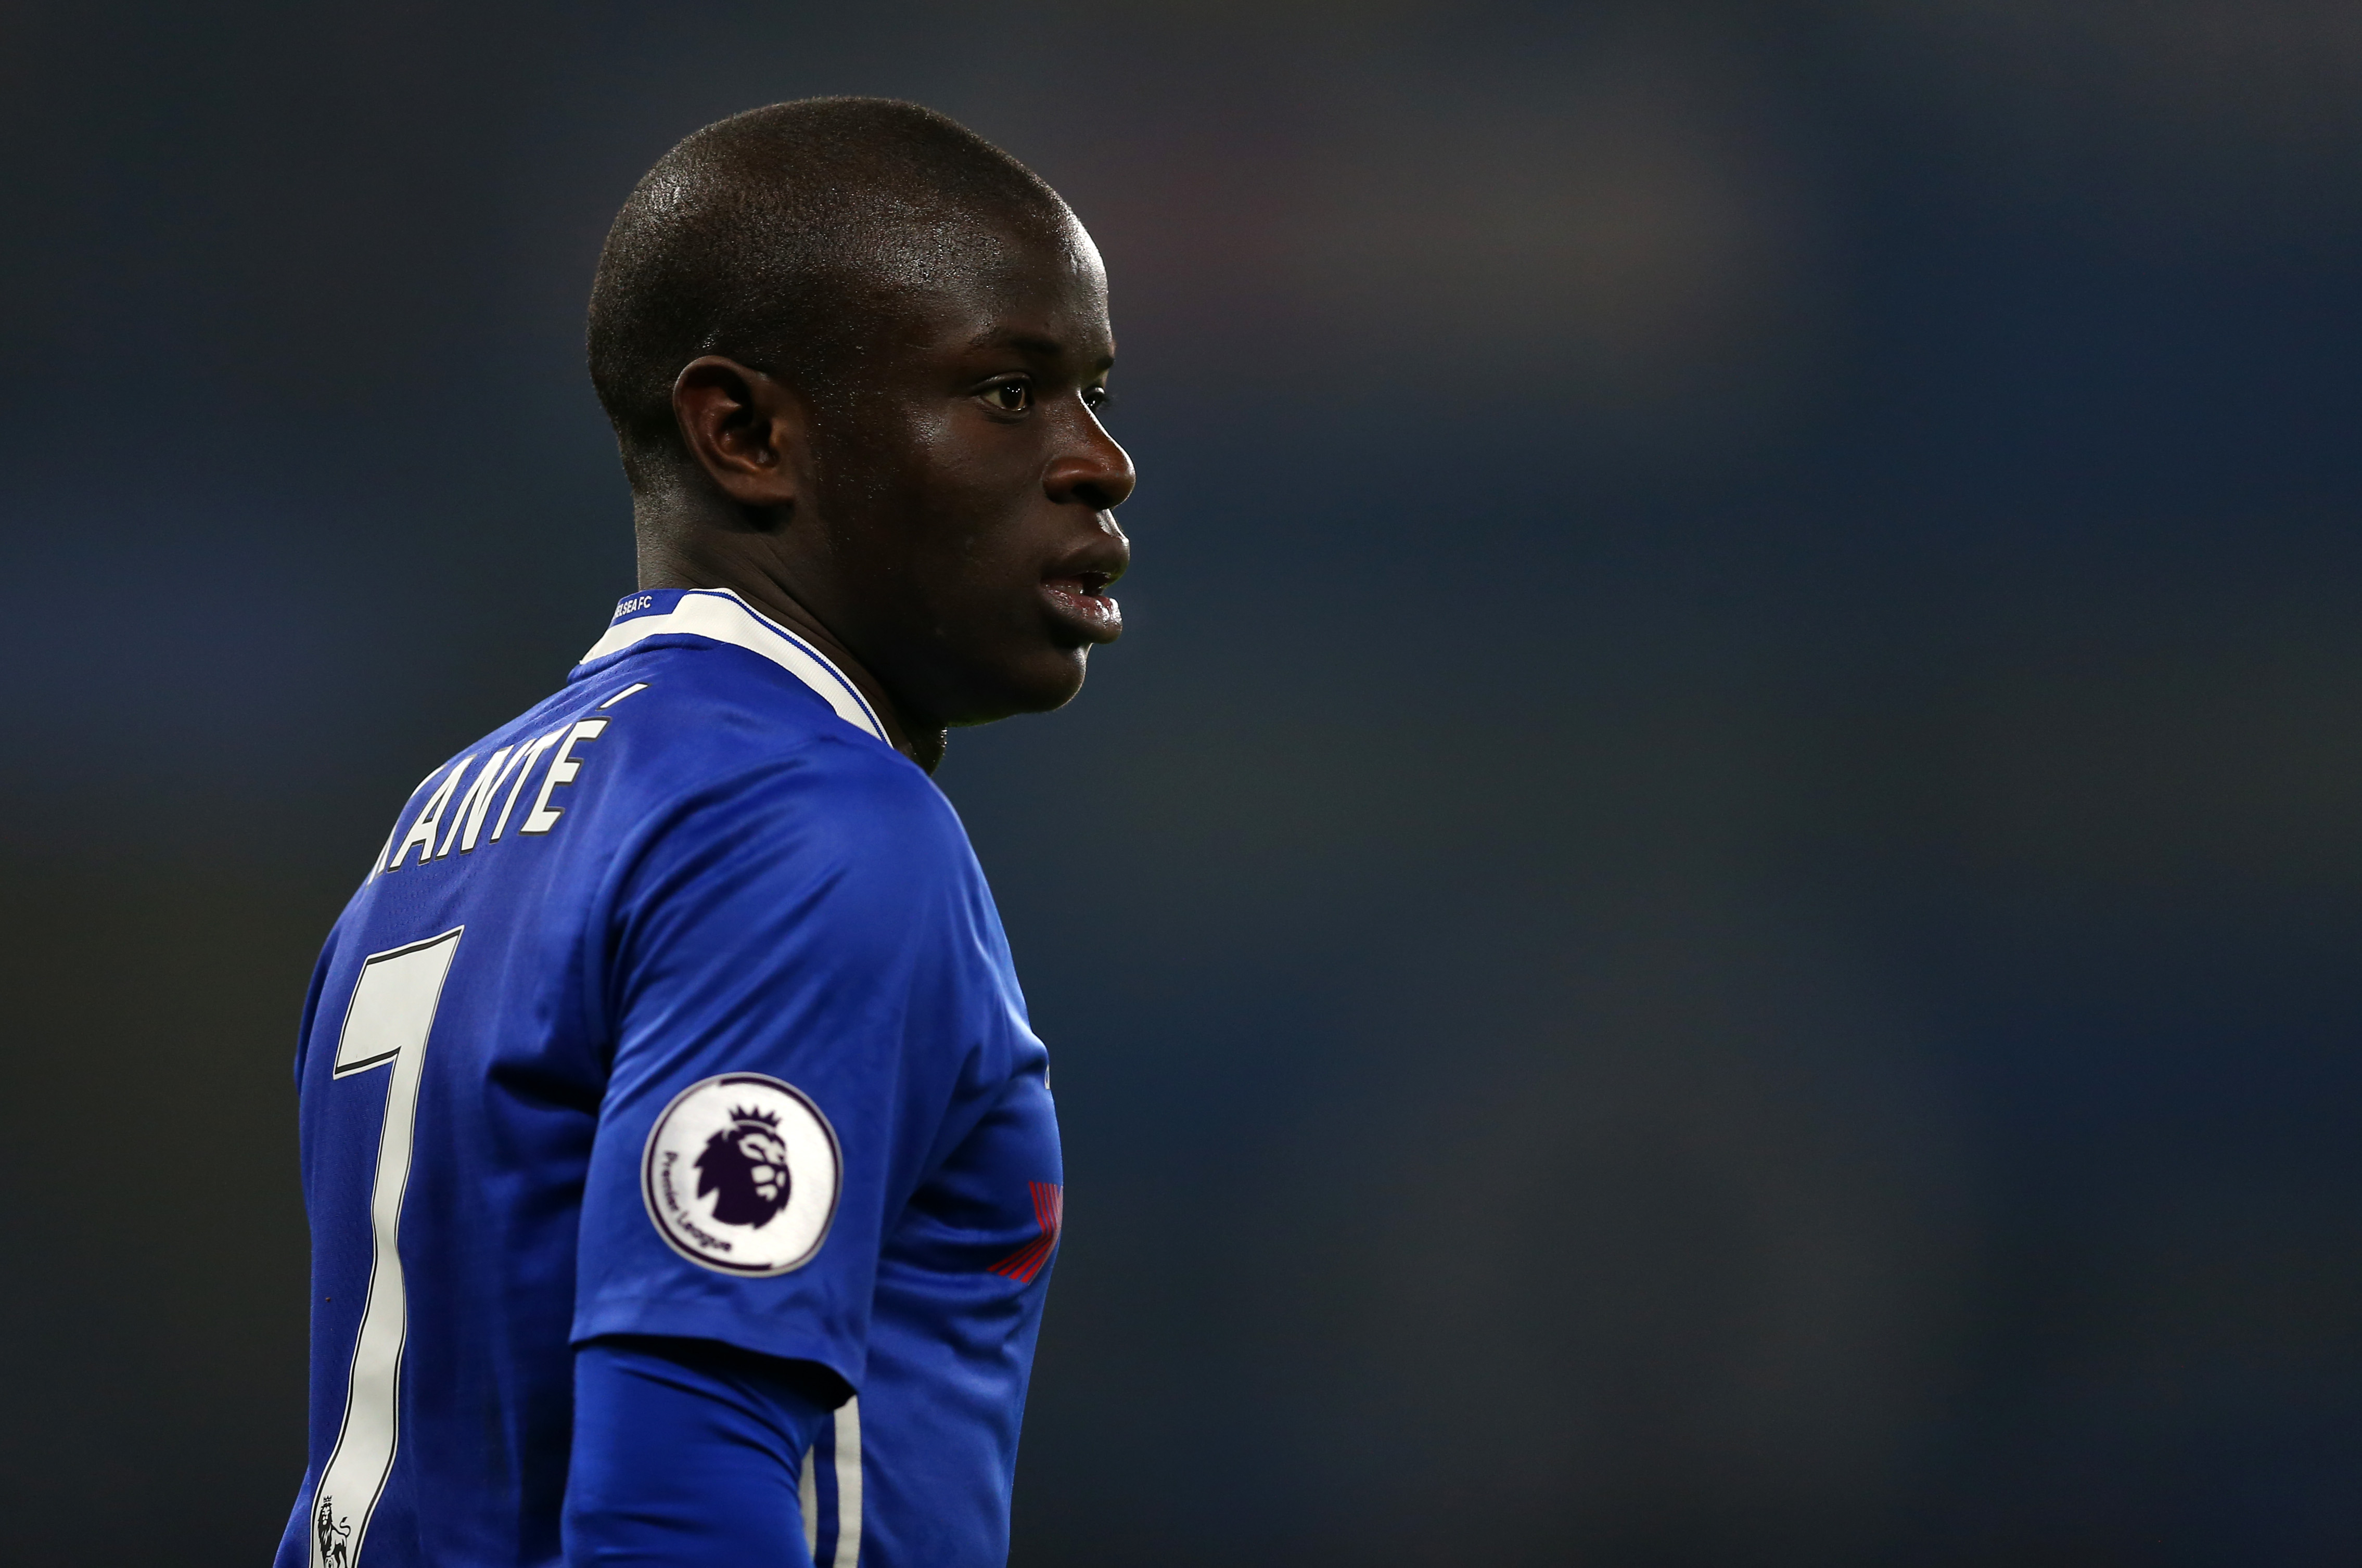 Chelsea legend Dennis Wise hails influence of 'unsung hero' N'Golo Kante